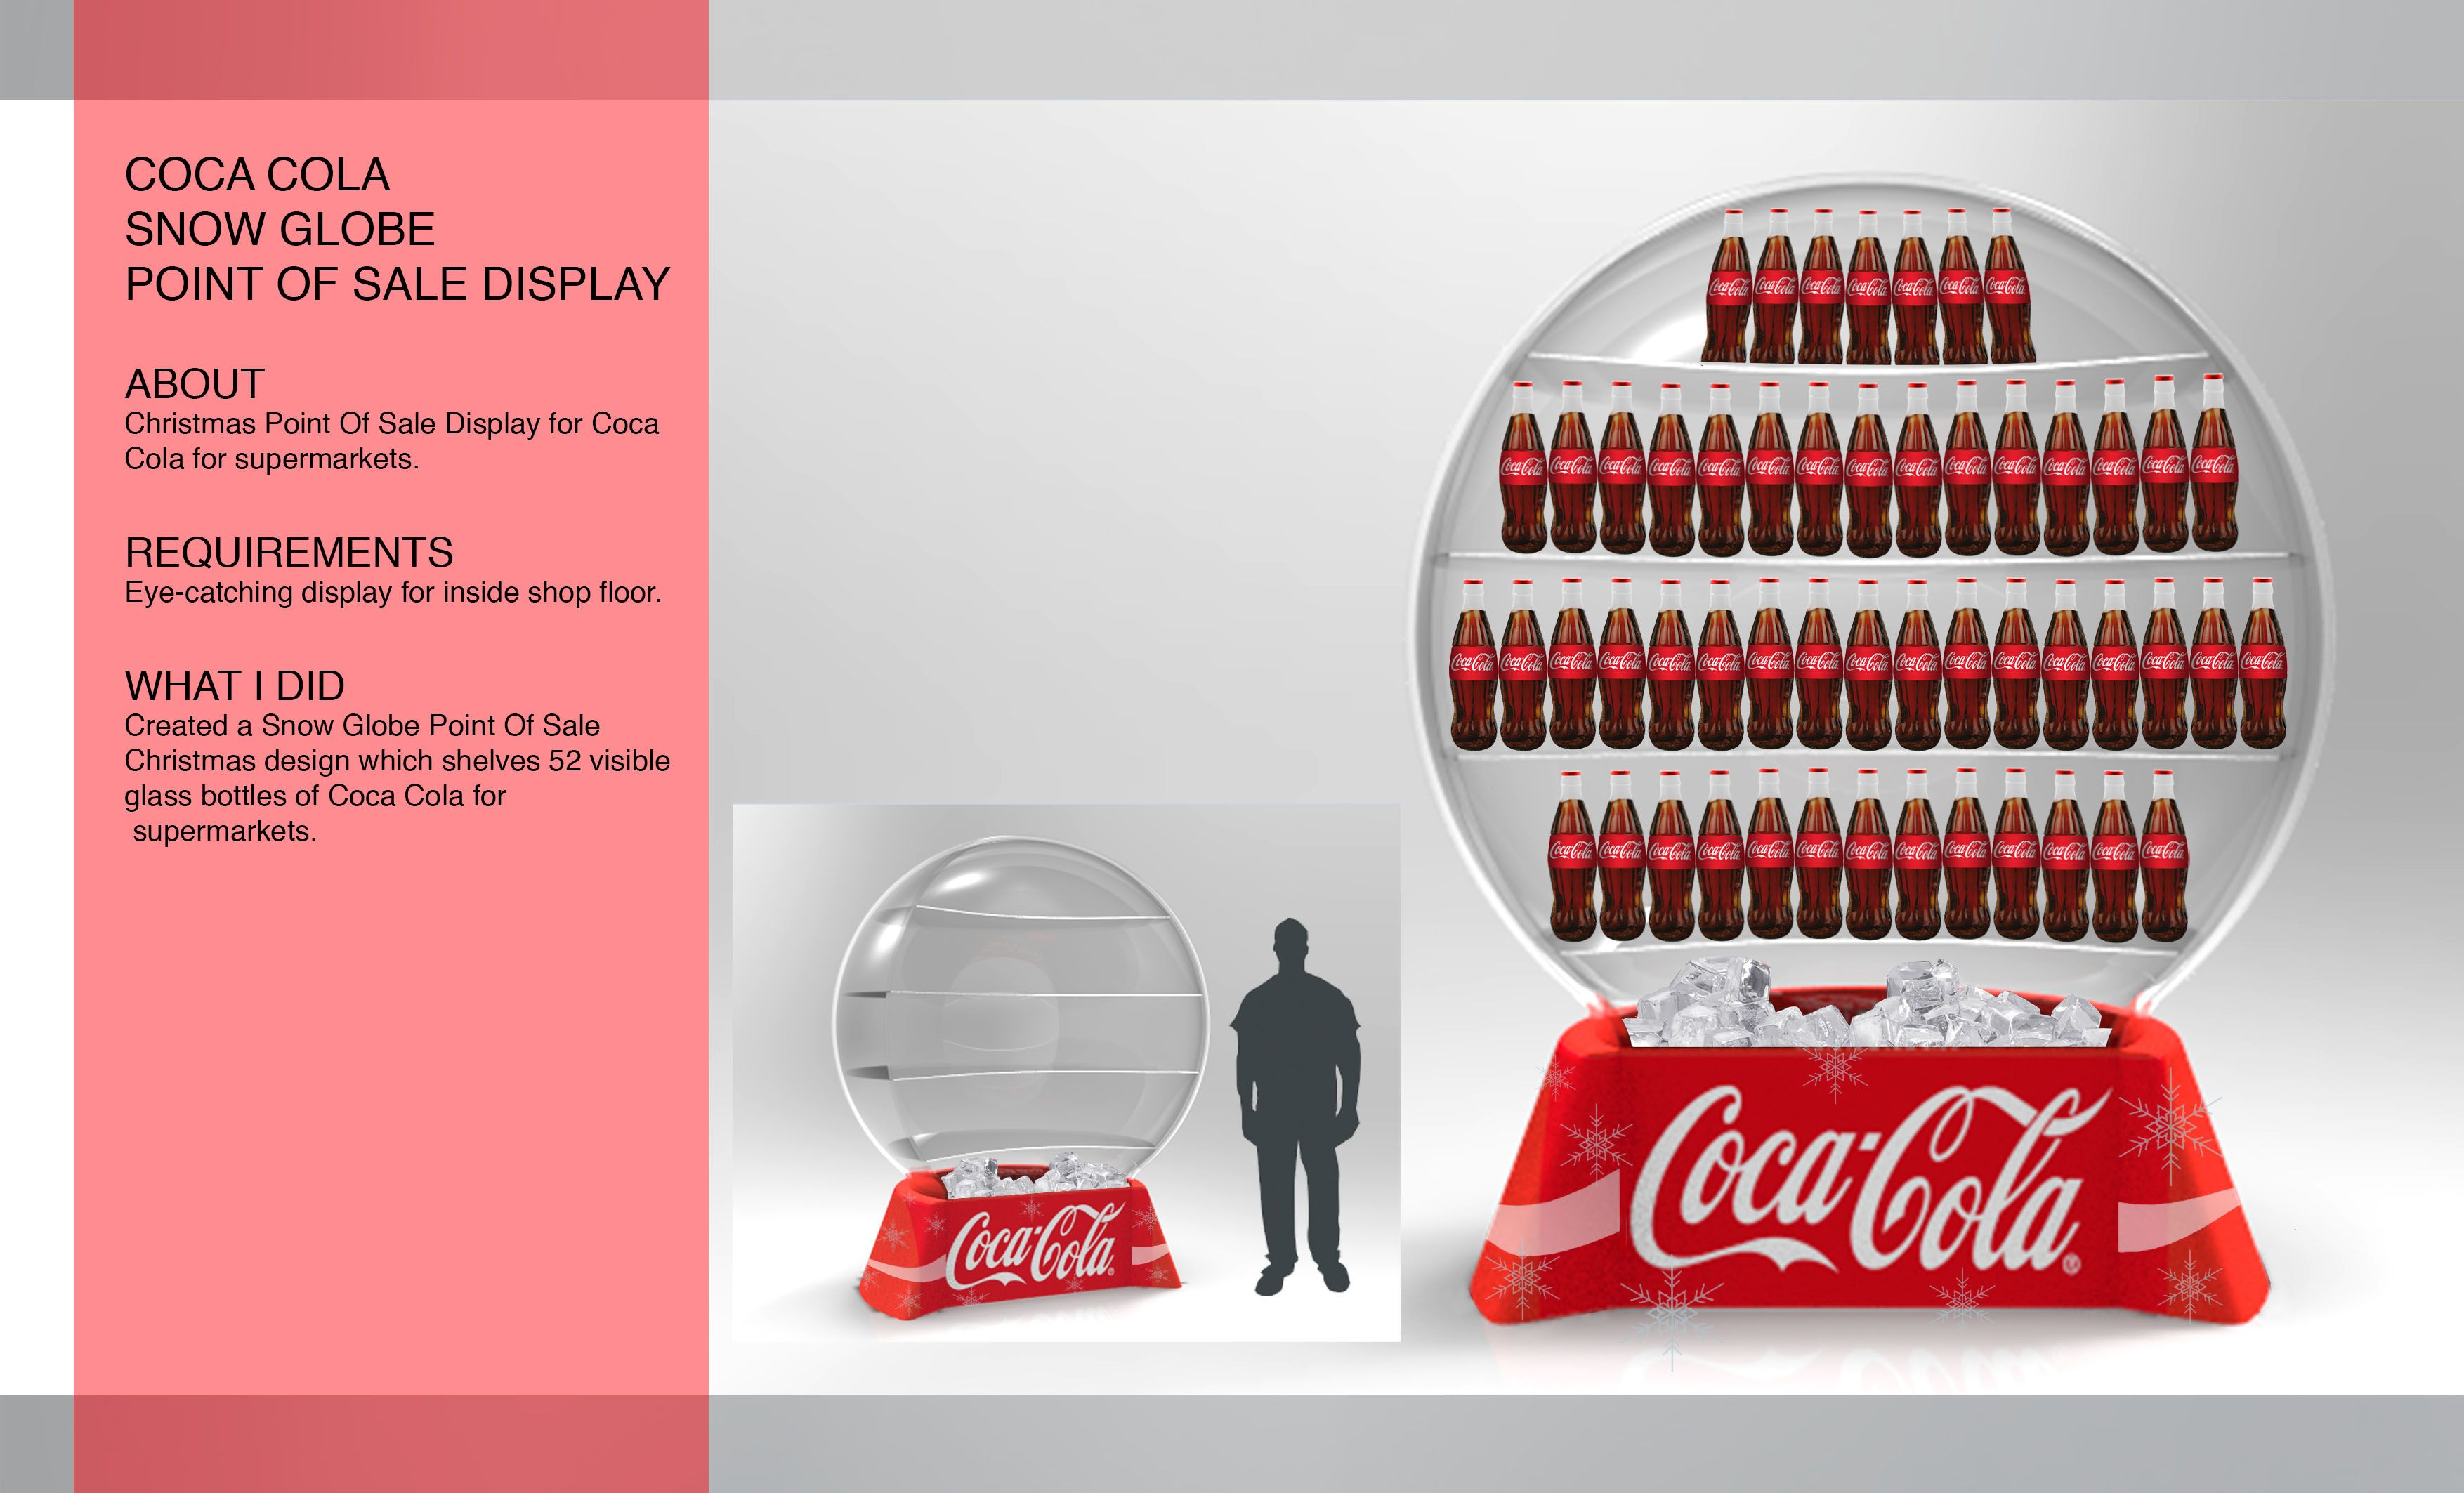 Posm design sofy posm design - Created A Snow Globe Point Of Sale Christmas Design Which Shelves 52 Visible Glass Bottles Of Coca Cola For Supermarkets